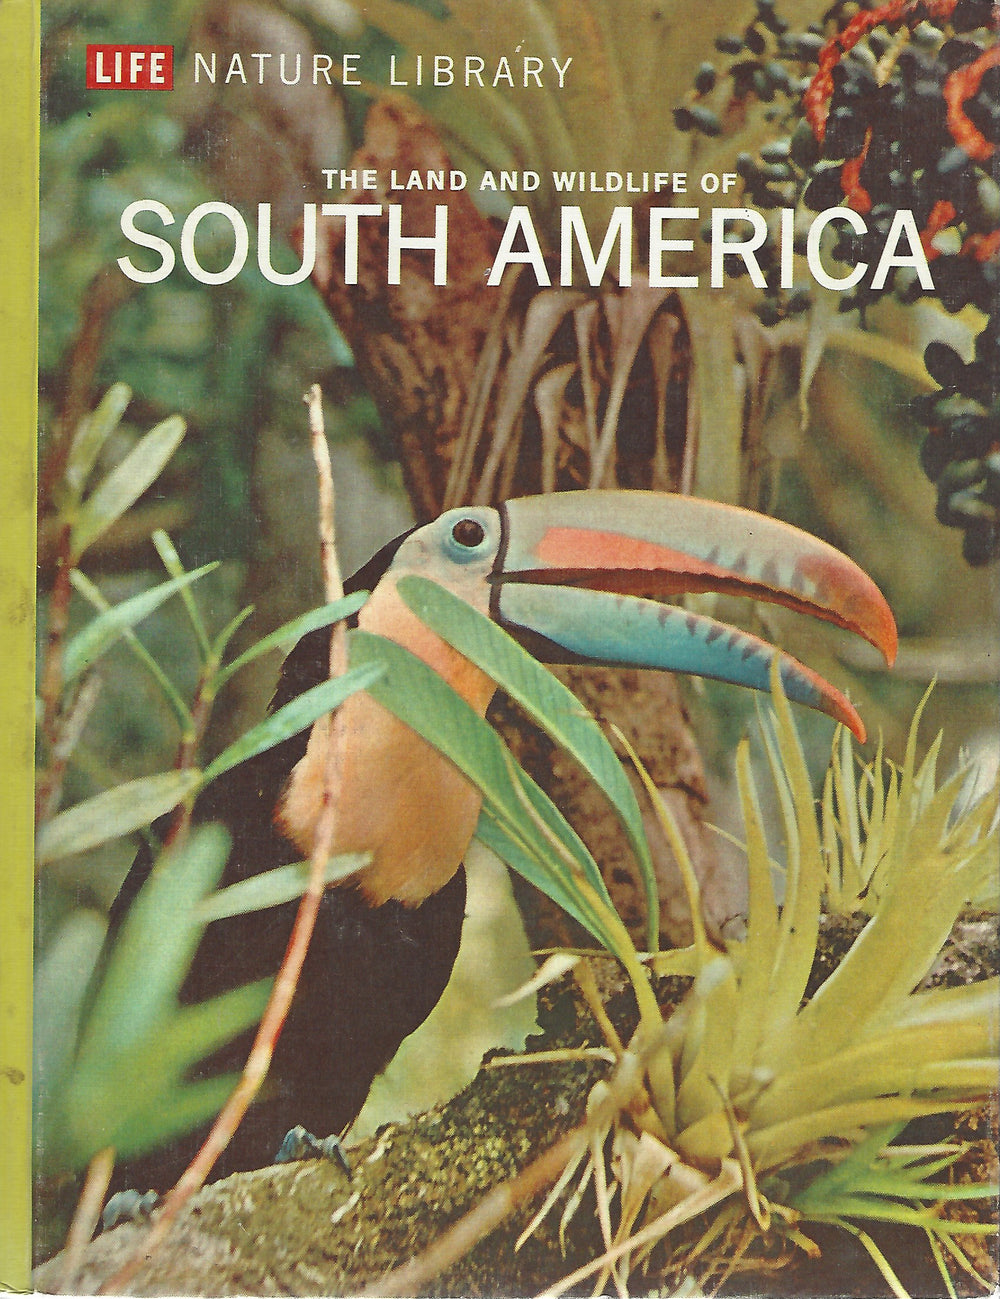 TIME LIFE: Nature Library; The Land and Wildlife of South America by Marston Bates (1964)